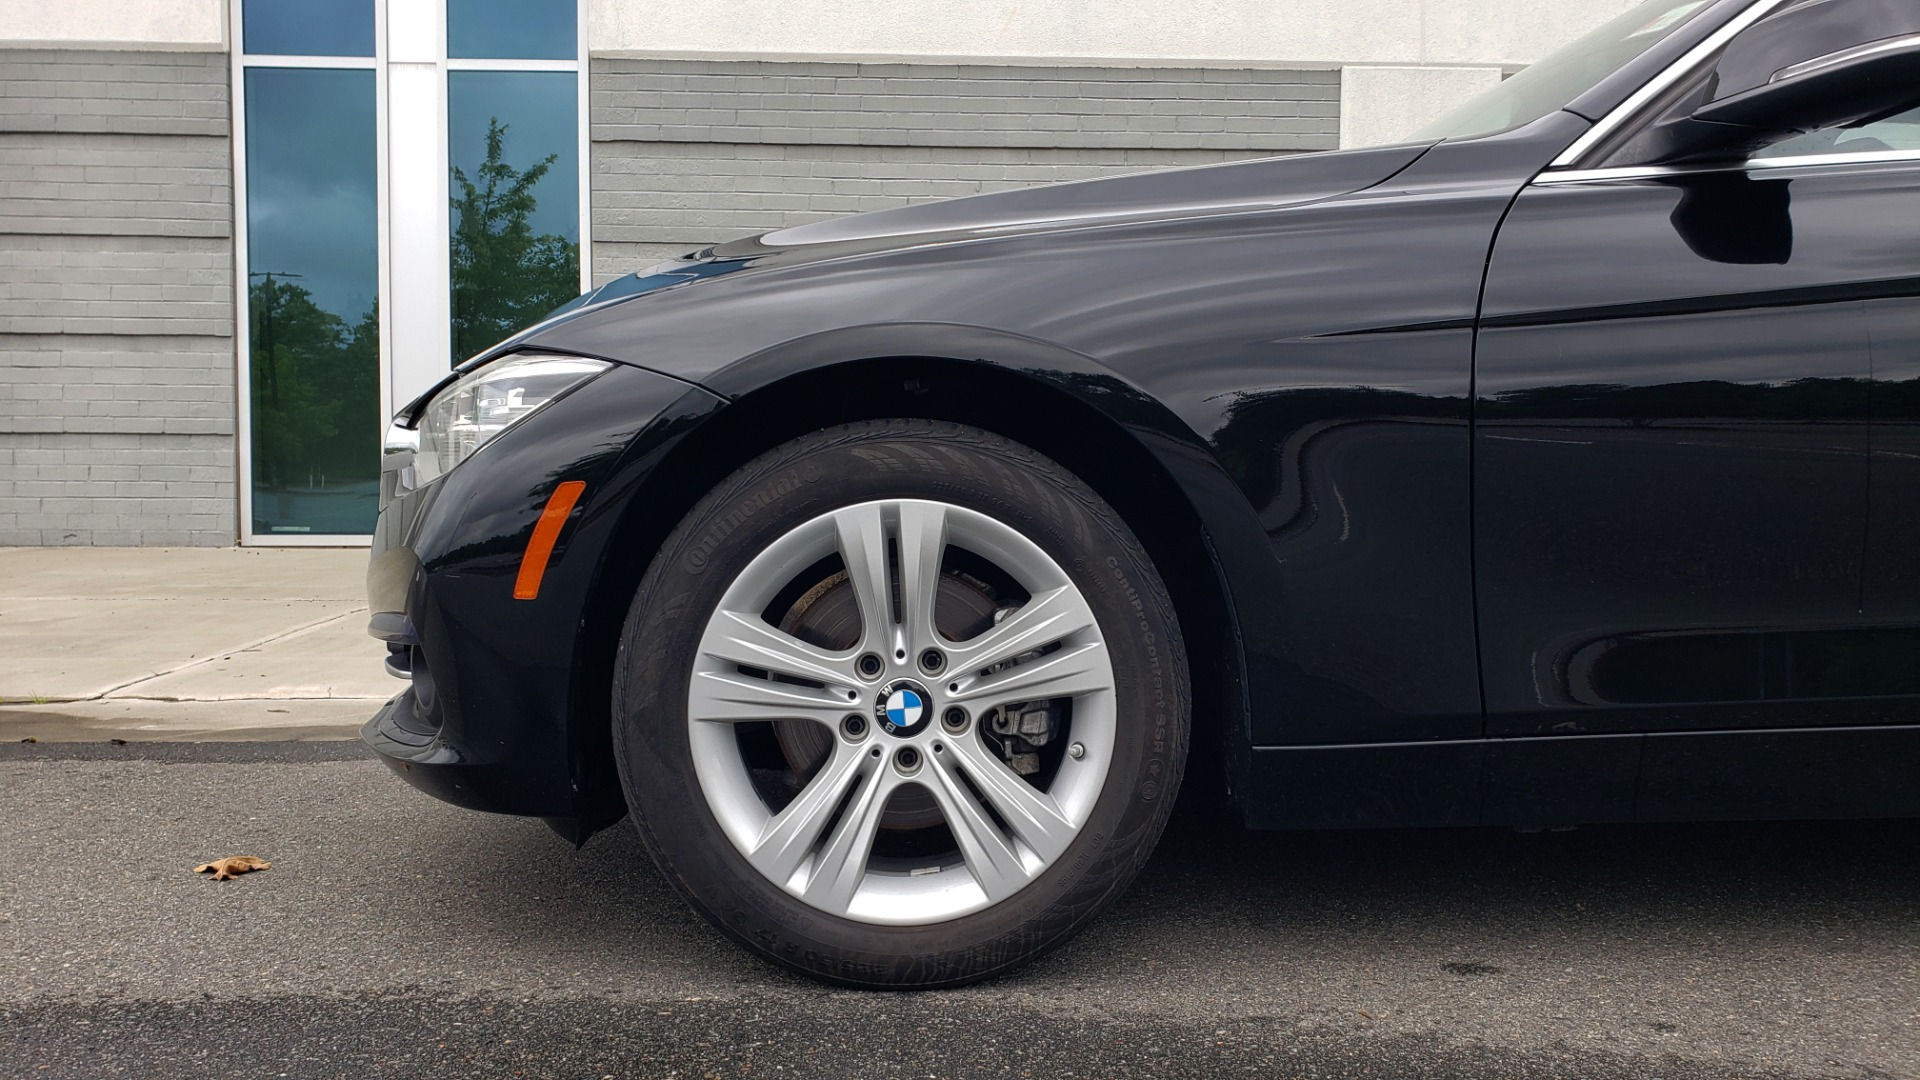 Used 2018 BMW 3 SERIES 330IXDRIVE / CONV PKG / NAV / SUNROOF / HTD STS / REARVIEW for sale $26,552 at Formula Imports in Charlotte NC 28227 77